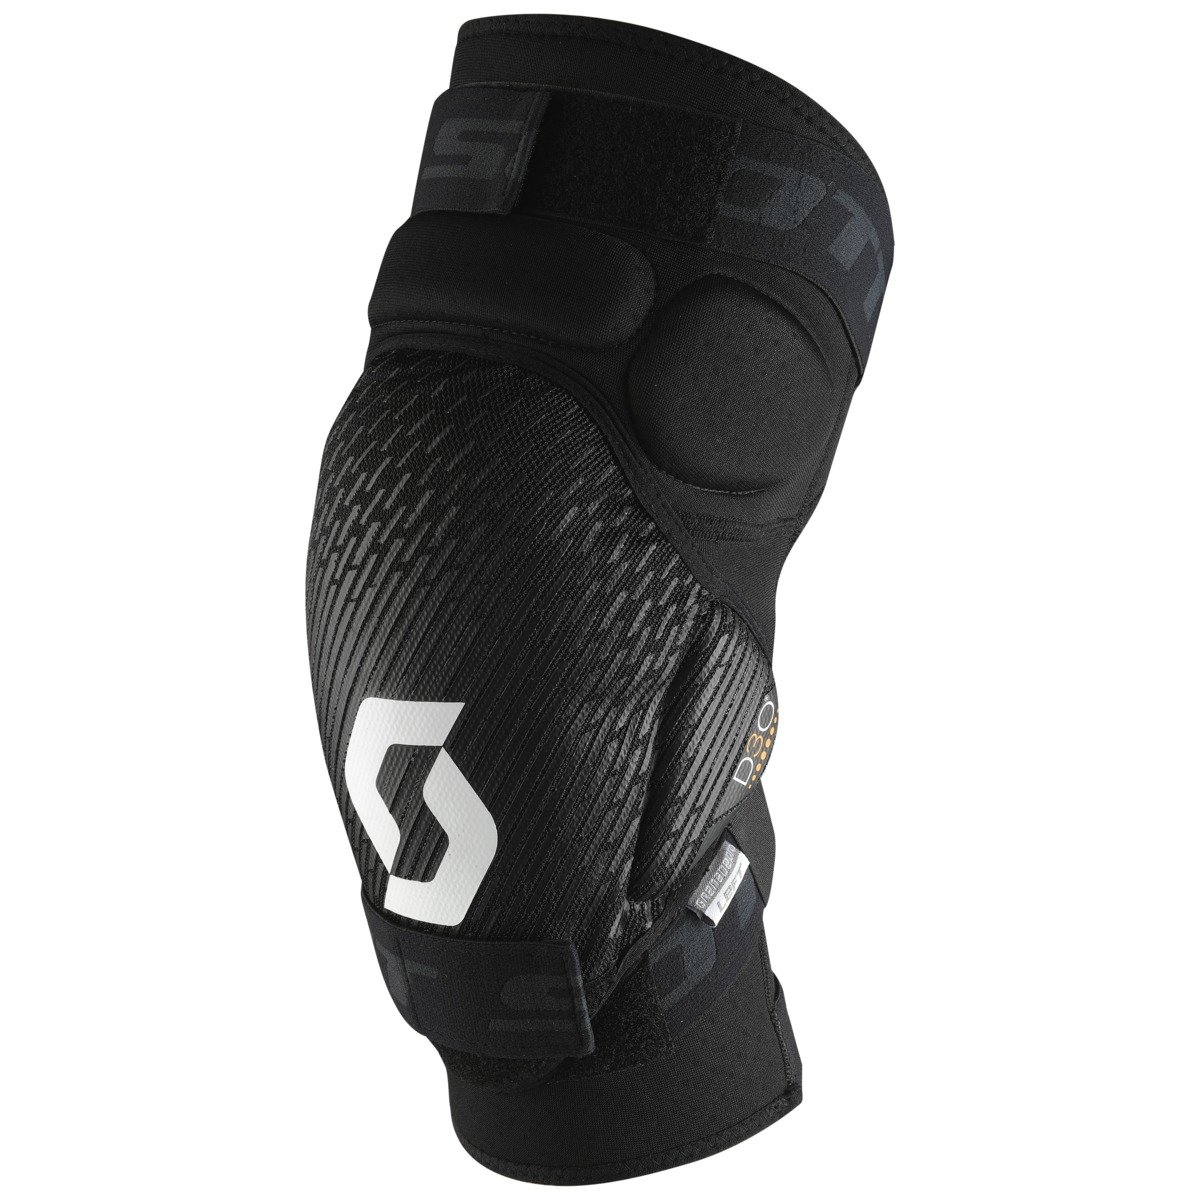 SCOTT(スコット) Knee Guards Grenade Evo 黒 S 2502240001006 ブラック